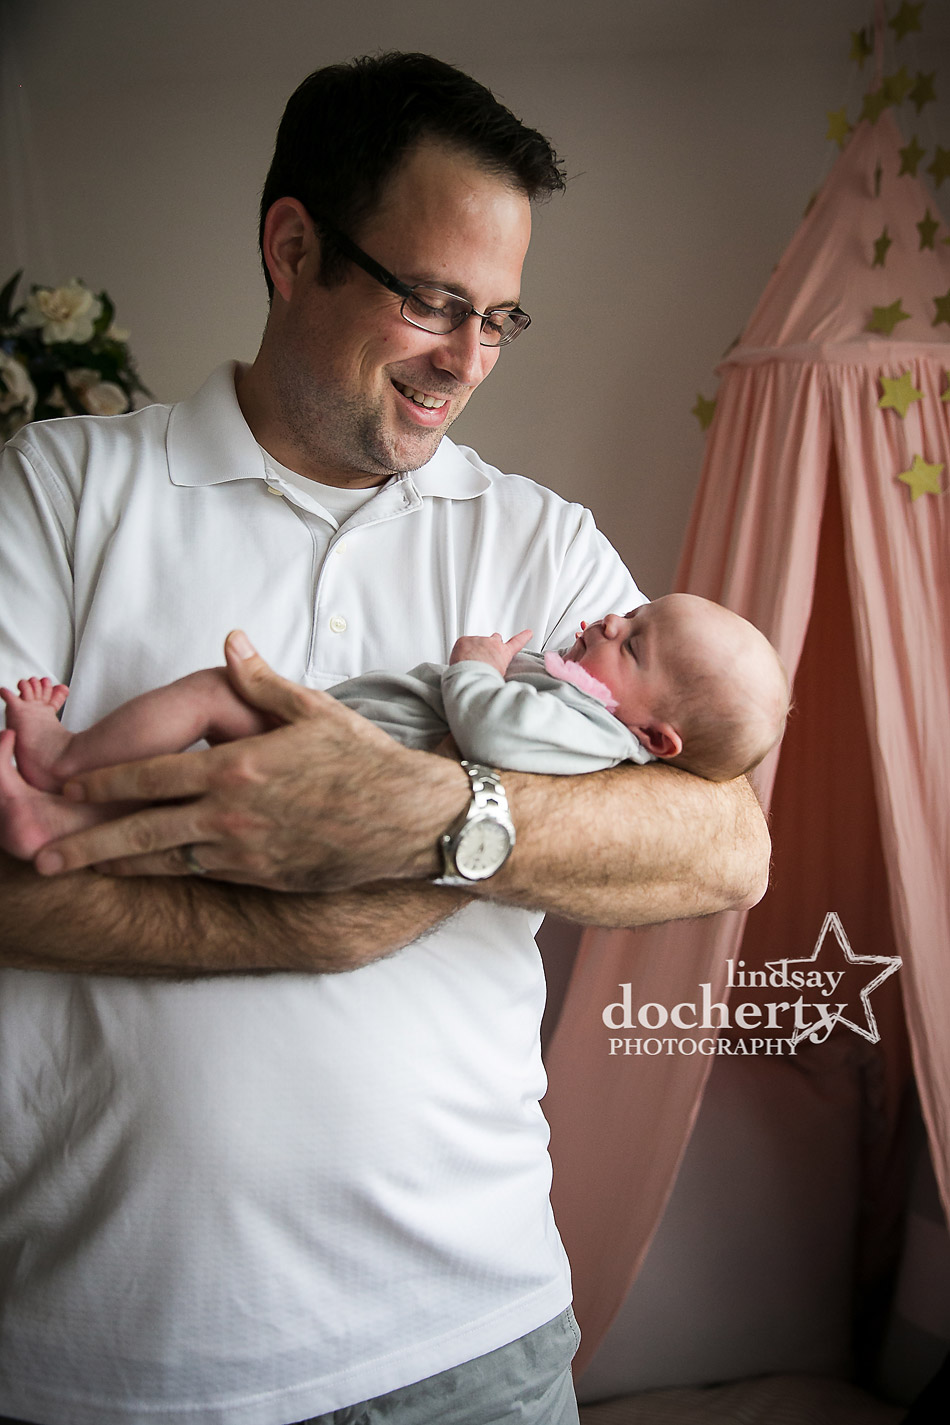 proud father of infant baby girl at newborn photo session